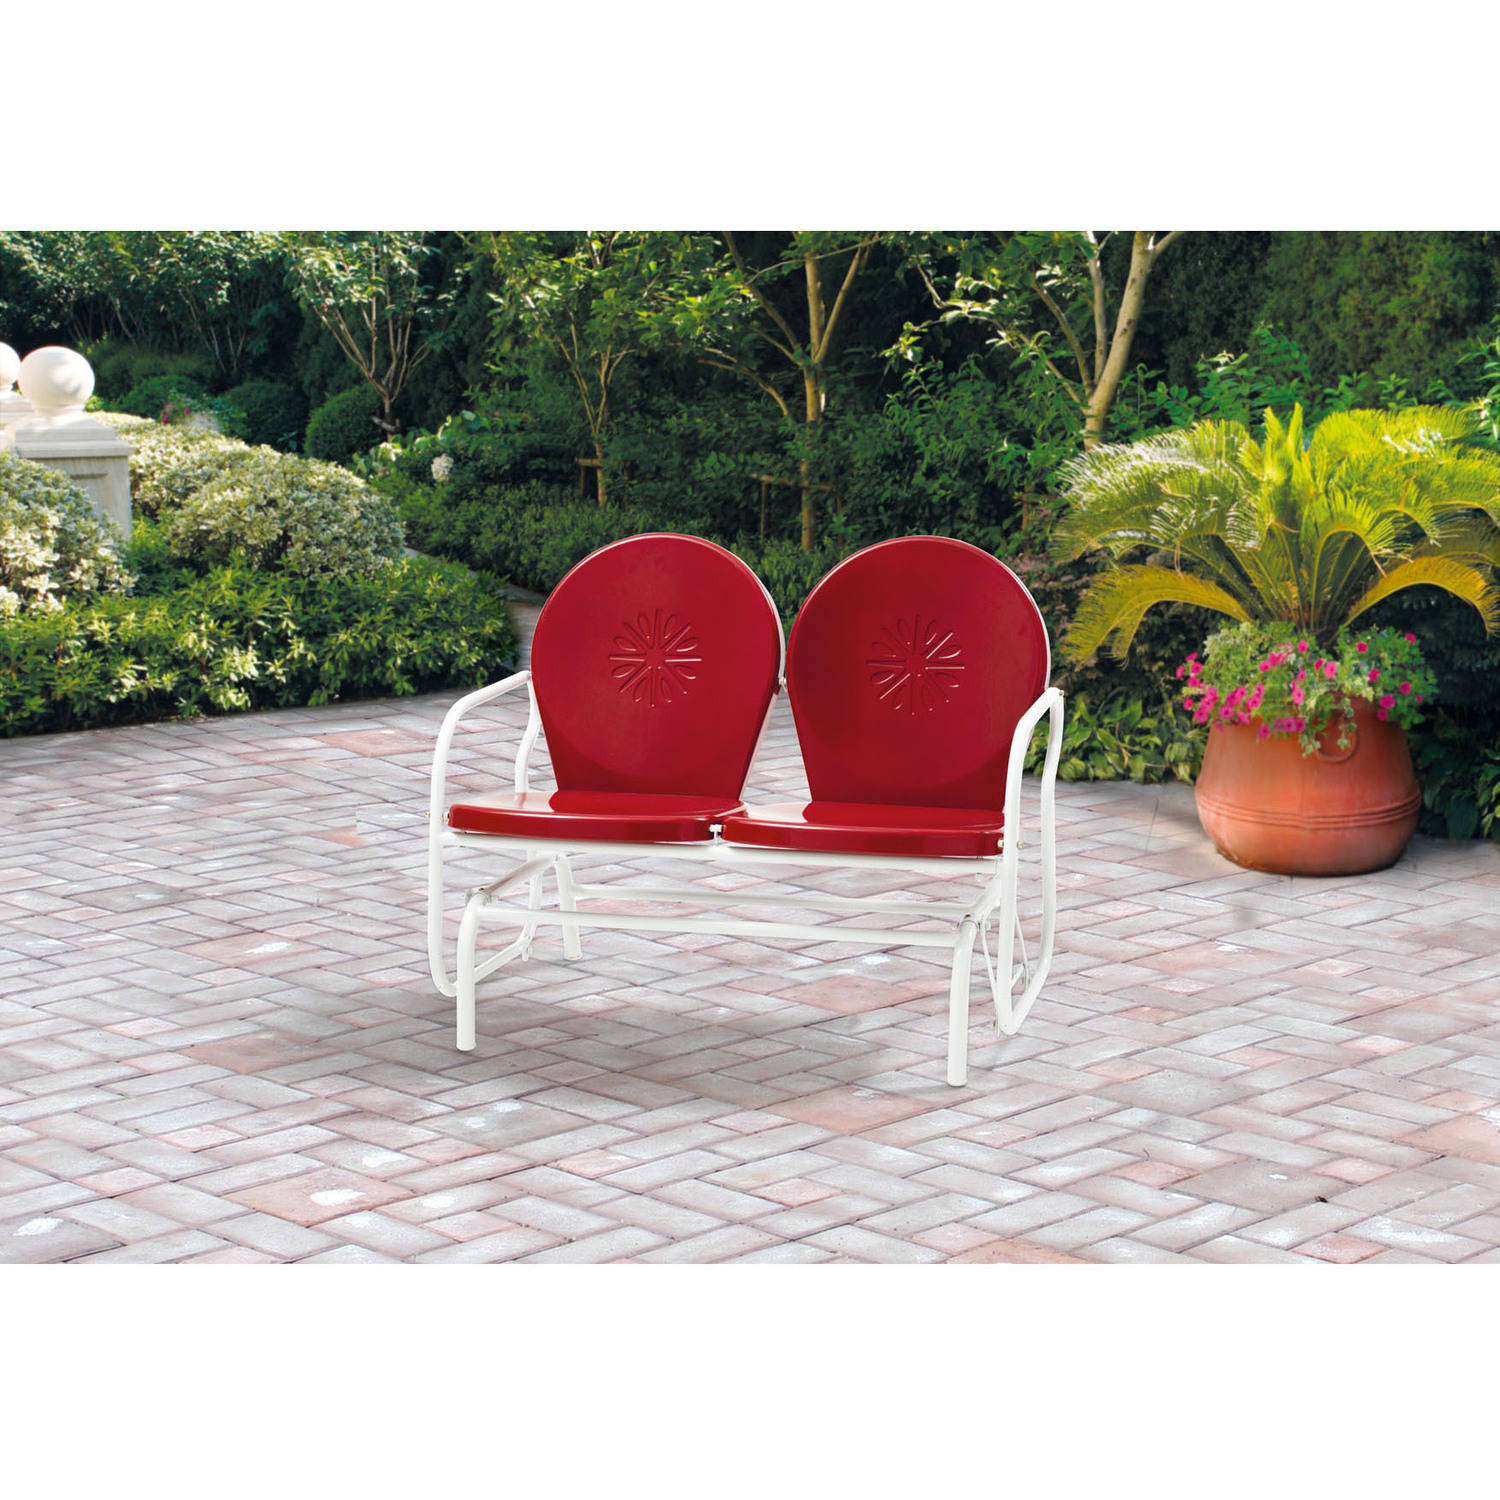 Details About Mainstays Retro Metal Glider Red Seats 2